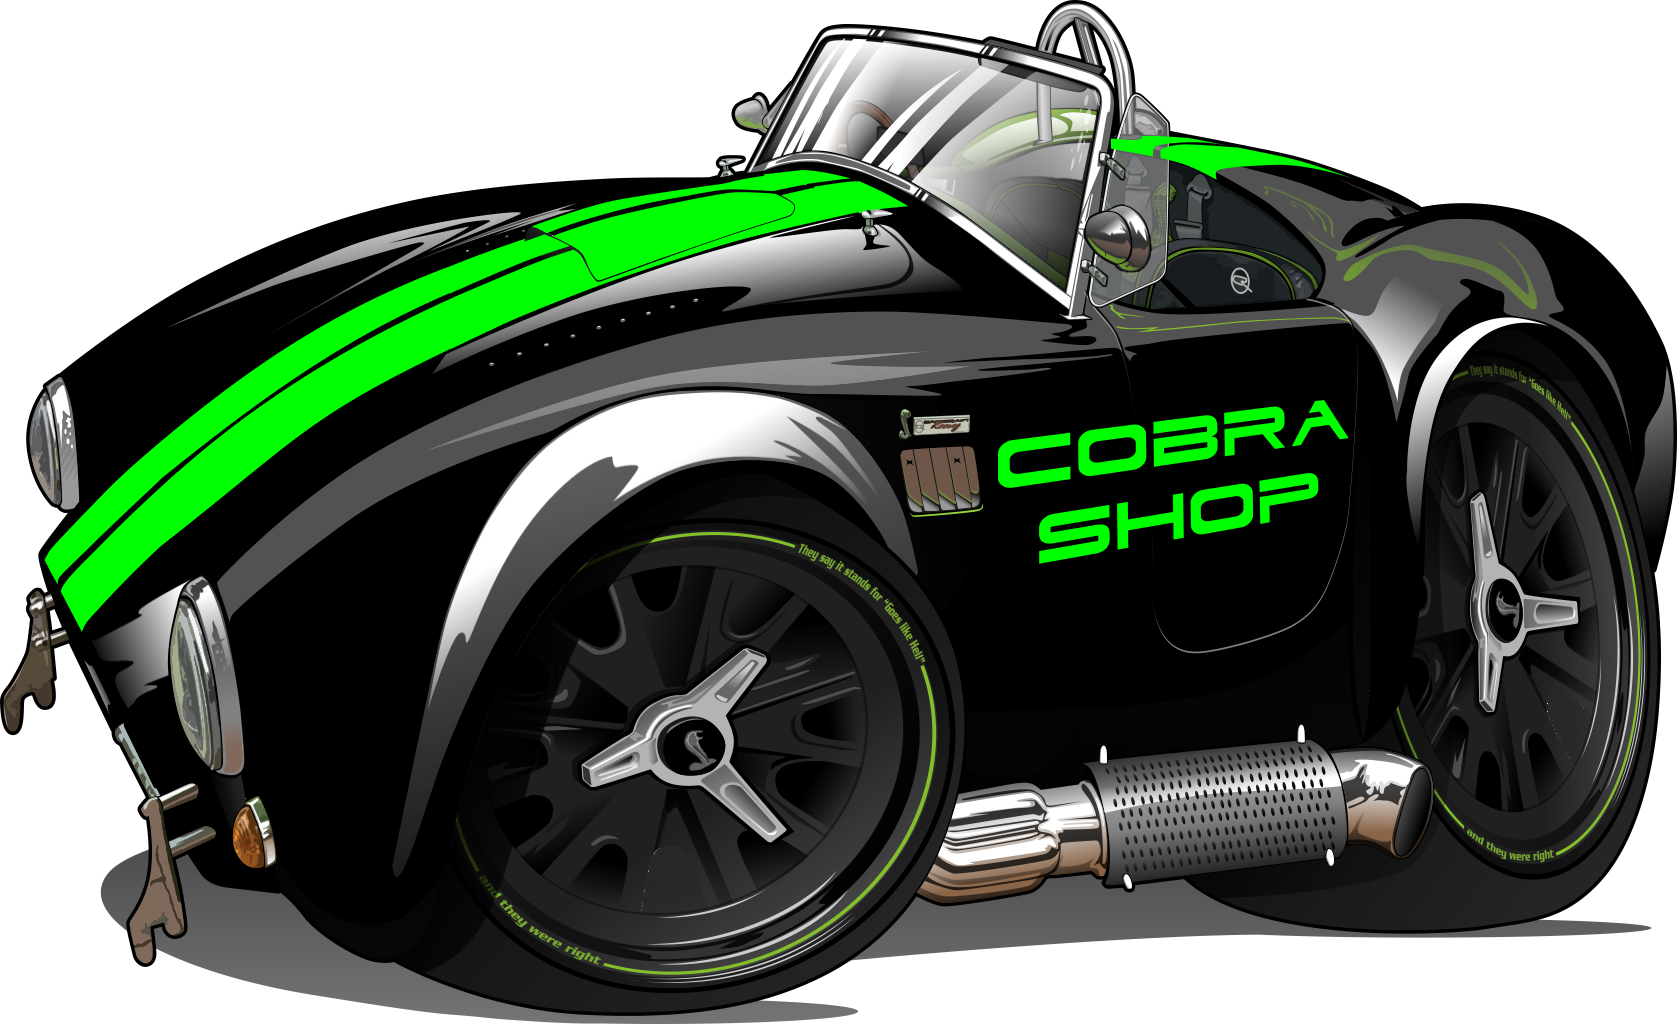 COBRA SHOP OF SOUTH AFRICA